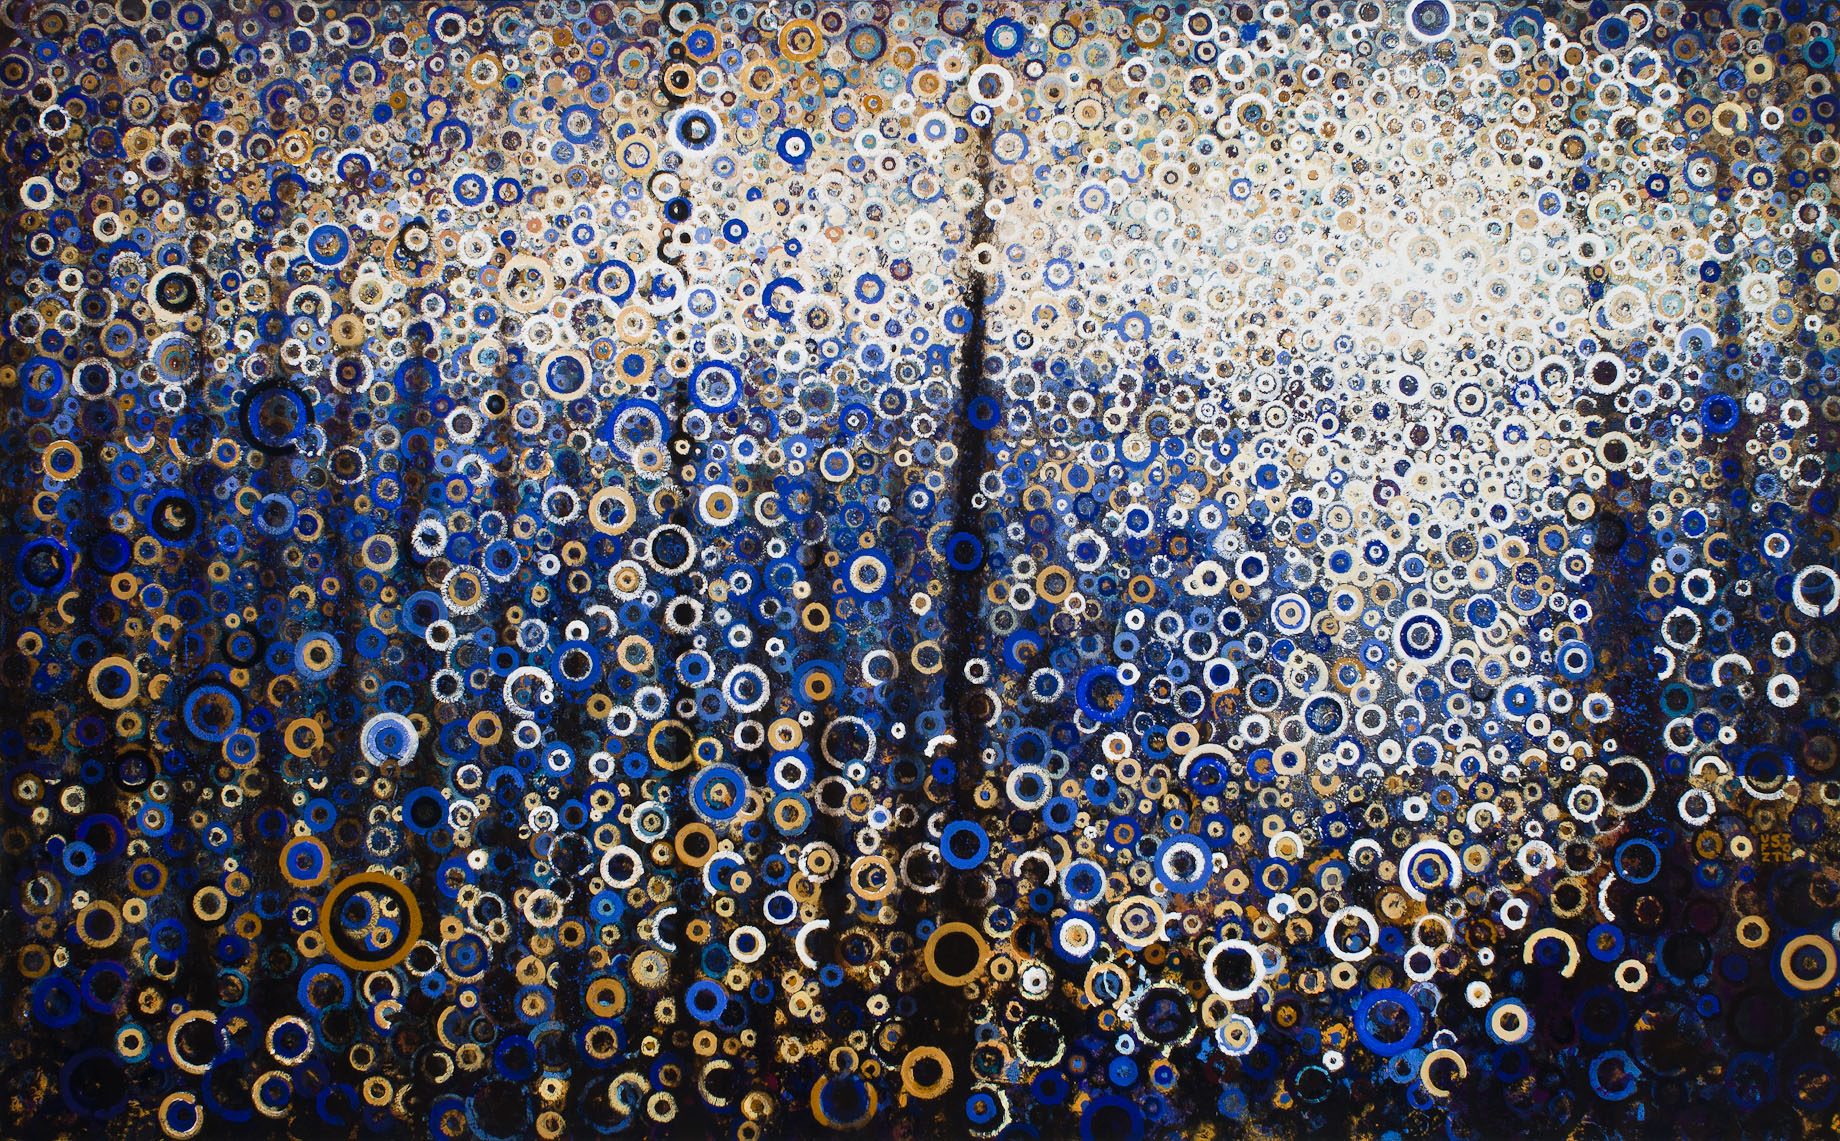 """Seagate"" by Randall Stoltzfus, 2013, acrylic dispersion on canvas, 60 by 96 inches"